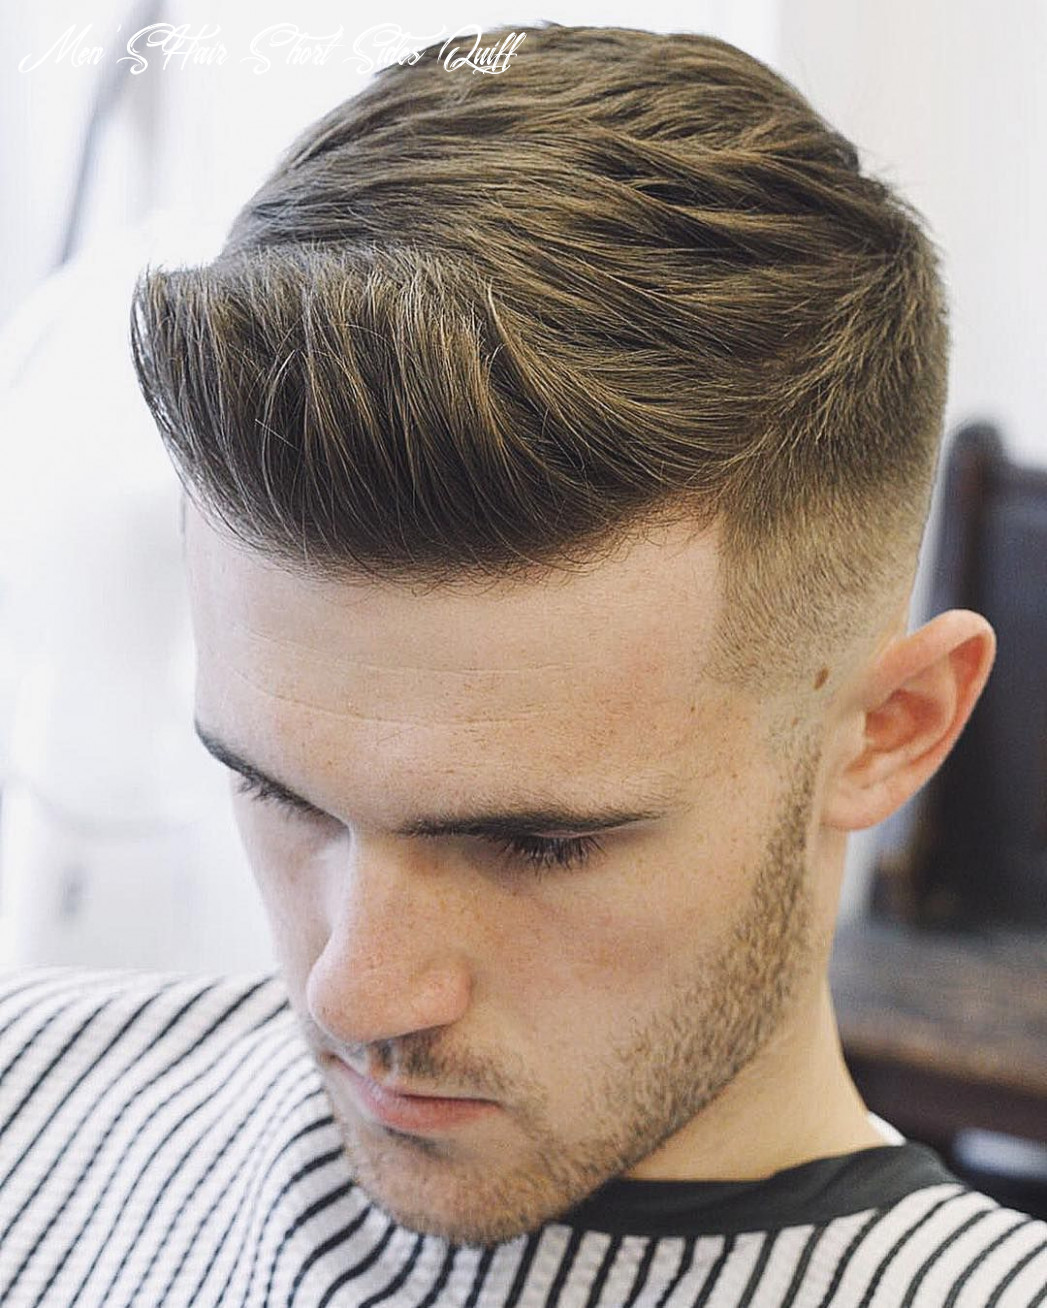 11 new hairstyles for men (11 update) | mens hairstyles short